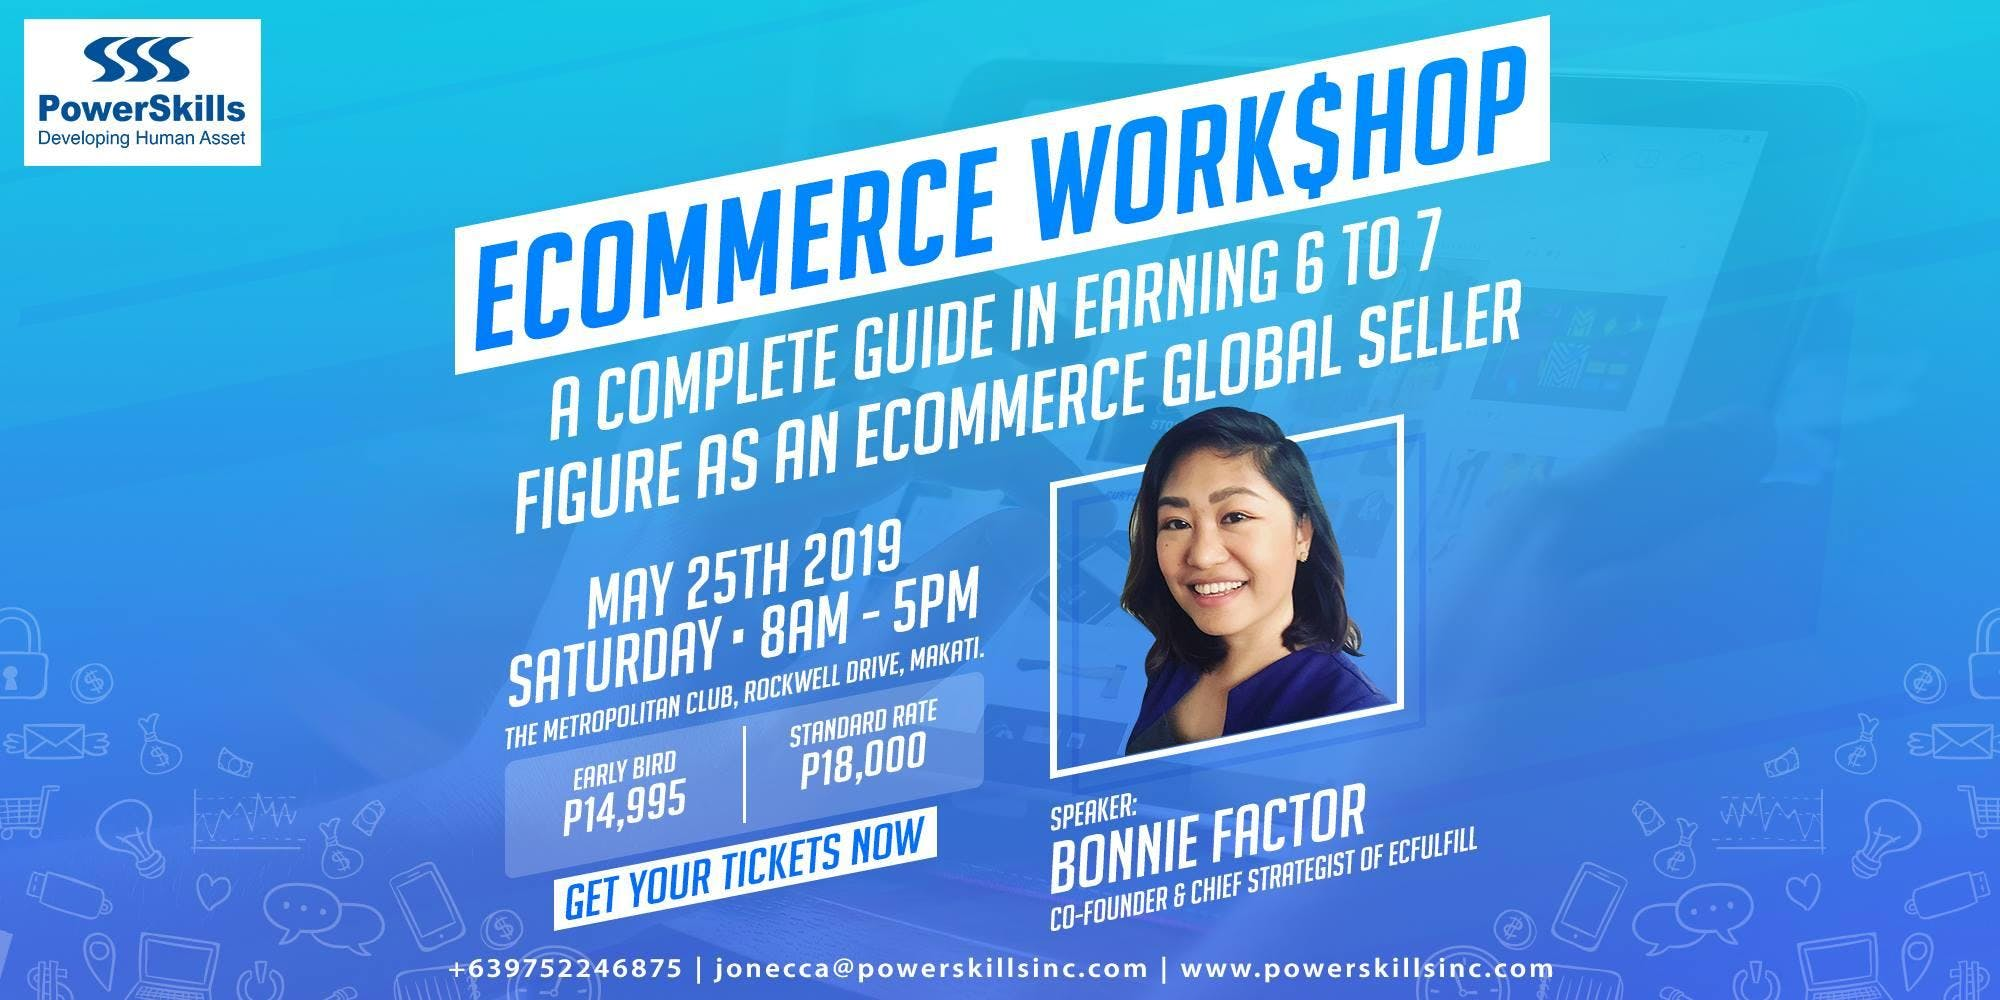 ECOMMERCE WORKSHOP: HOW TO EARN 6-7 FIGURE AS AN ECOMMERCE GLOBAL SELLER